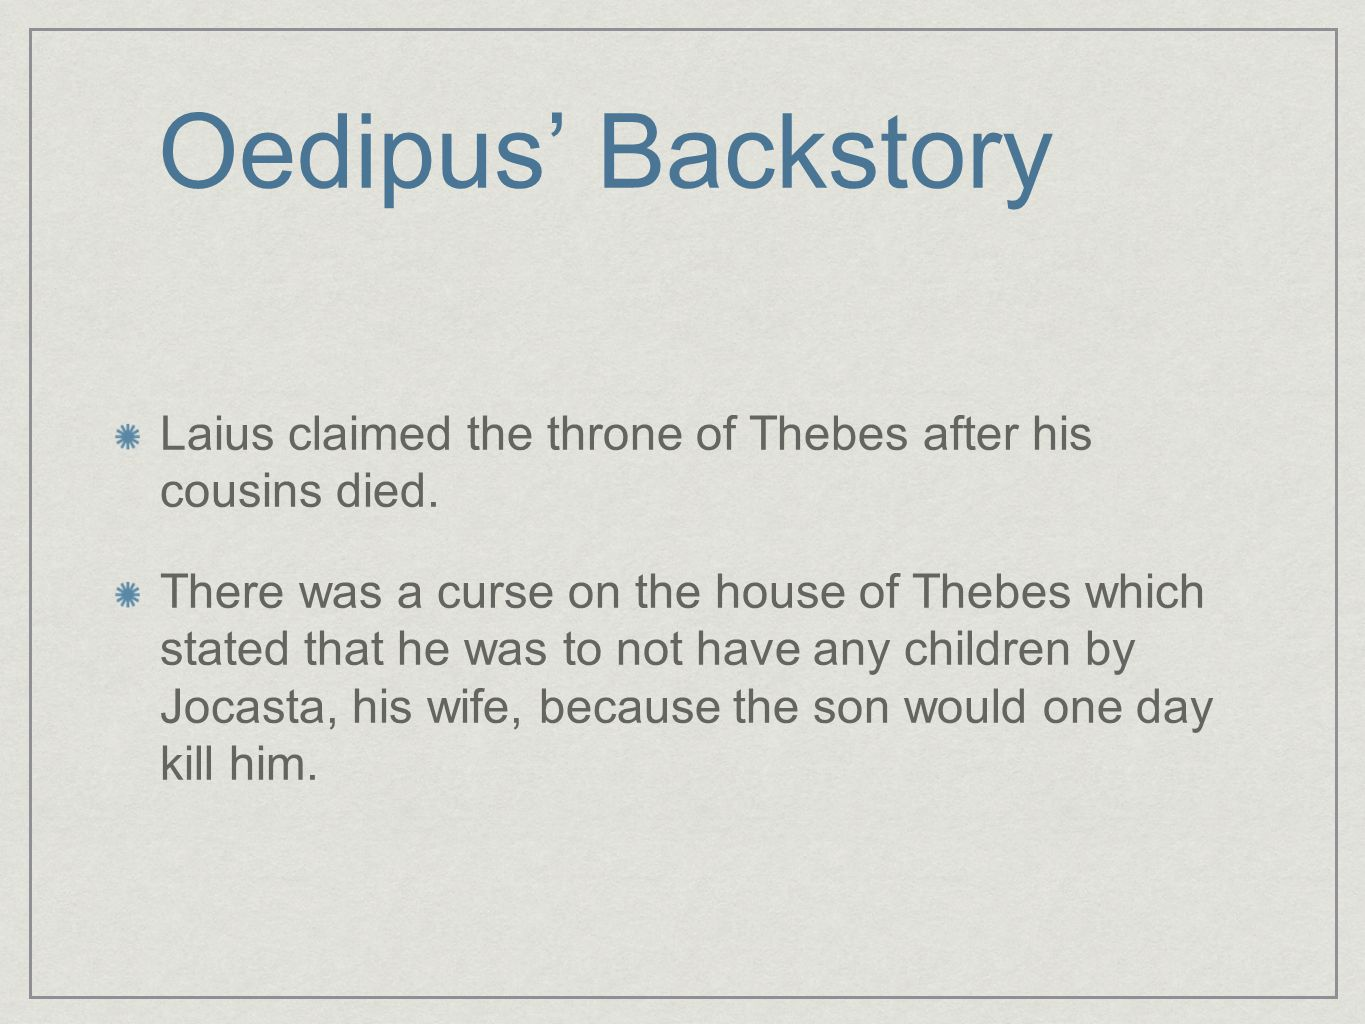 Oedipus' Backstory Laius claimed the throne of Thebes after his cousins died. There was a curse on the house of Thebes which stated that he was to not